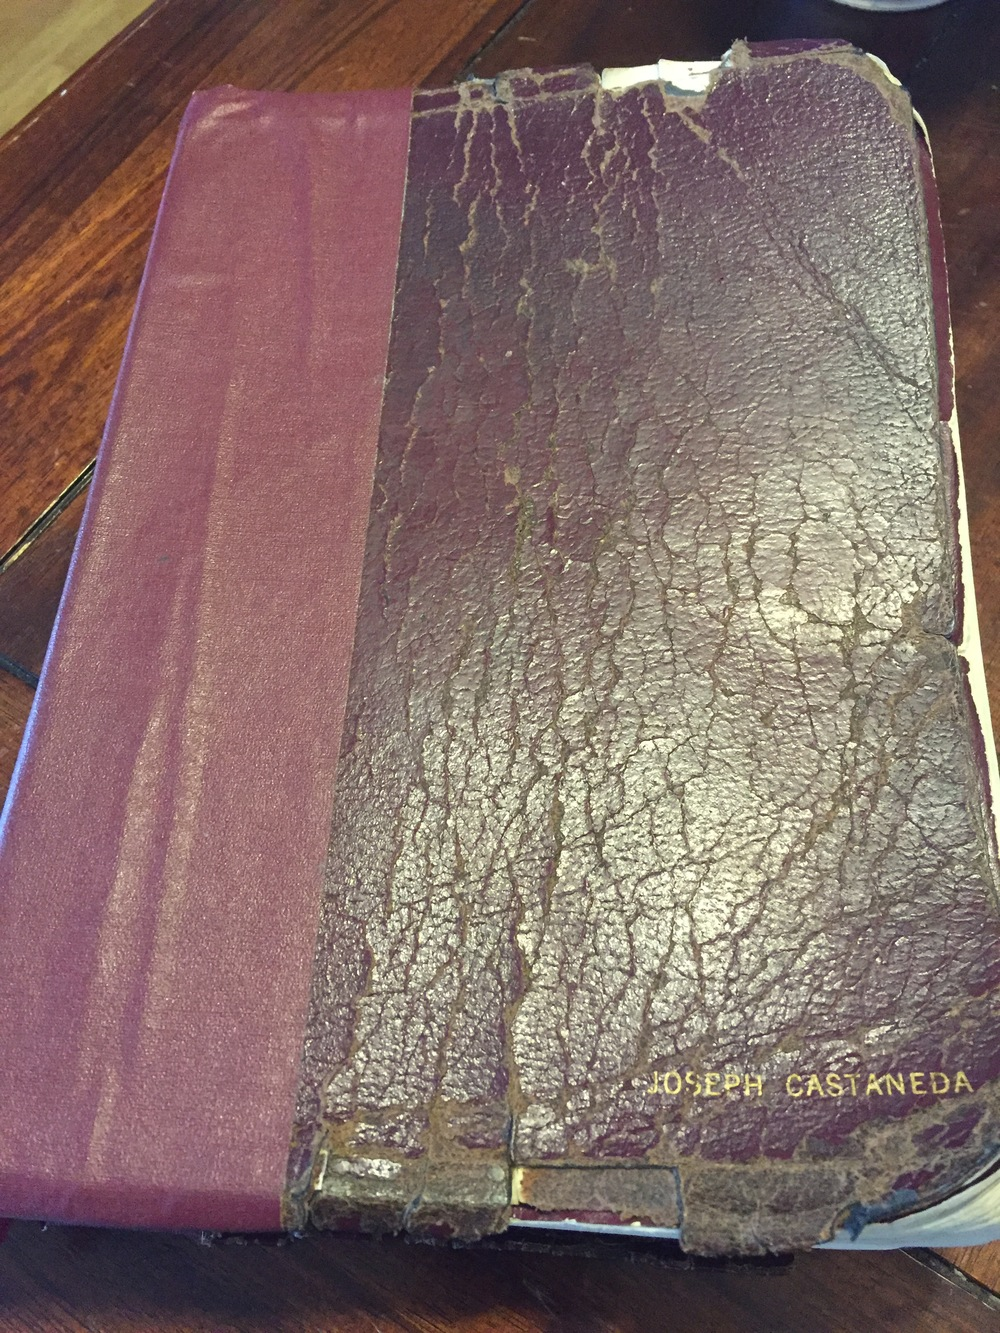 My parents gave me this Bible when I was 18. It may not look great, but it's content is priceless!